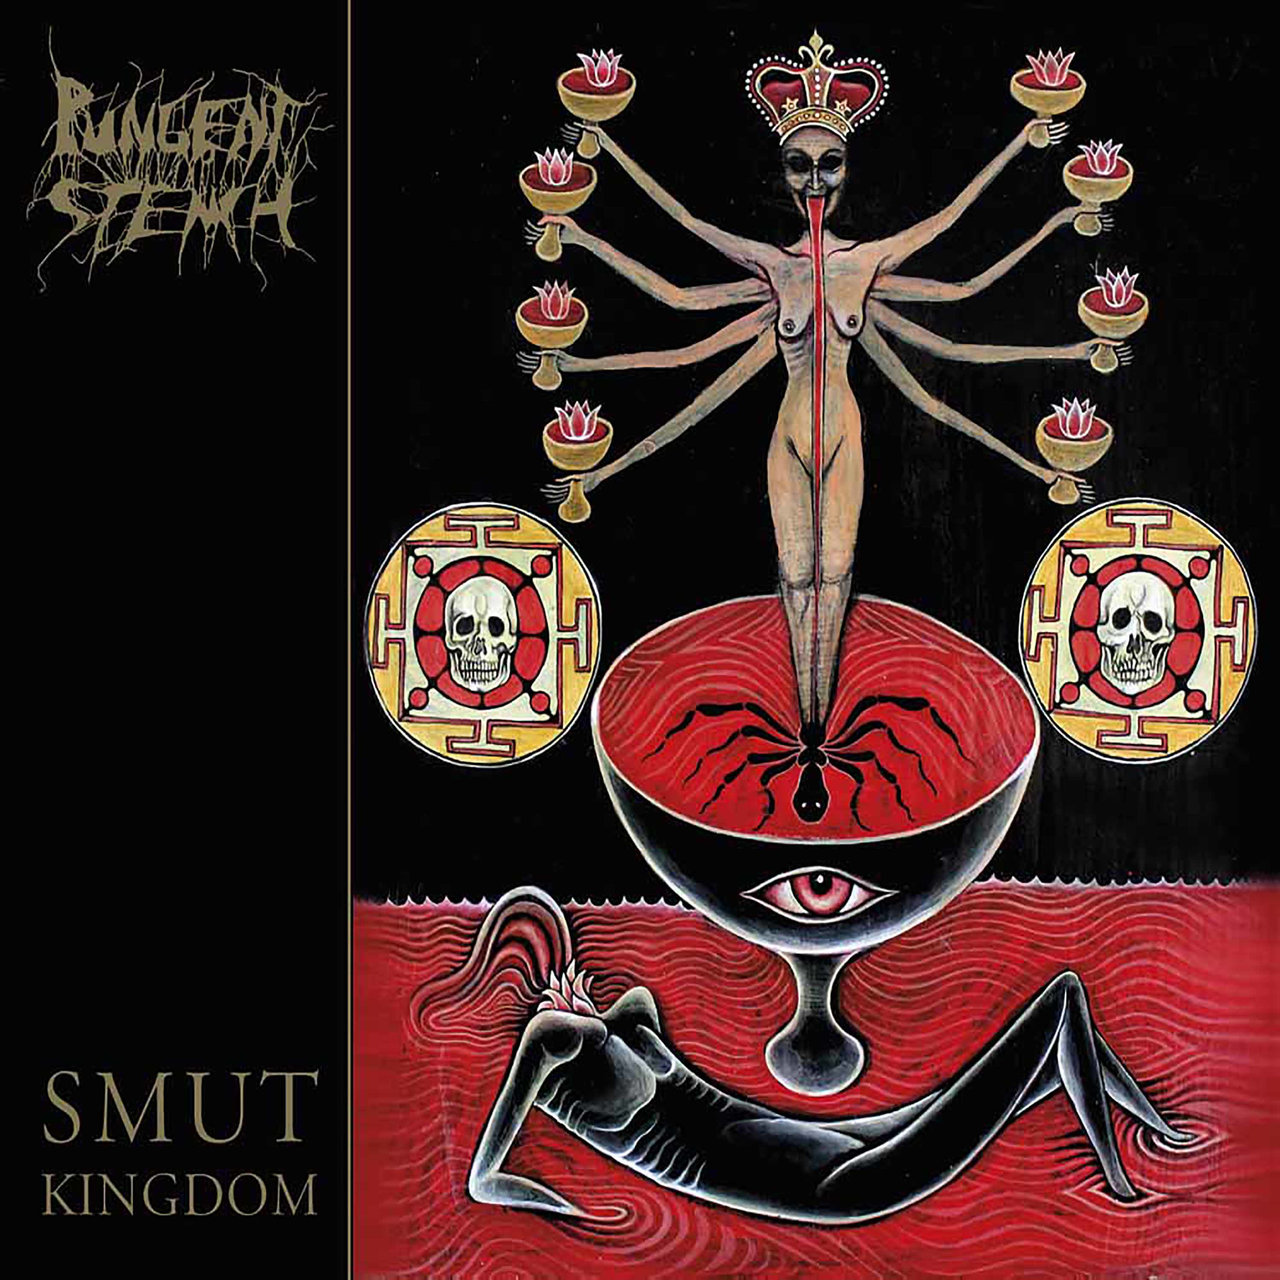 Pungent Stench - Smut Kingdom - 2018